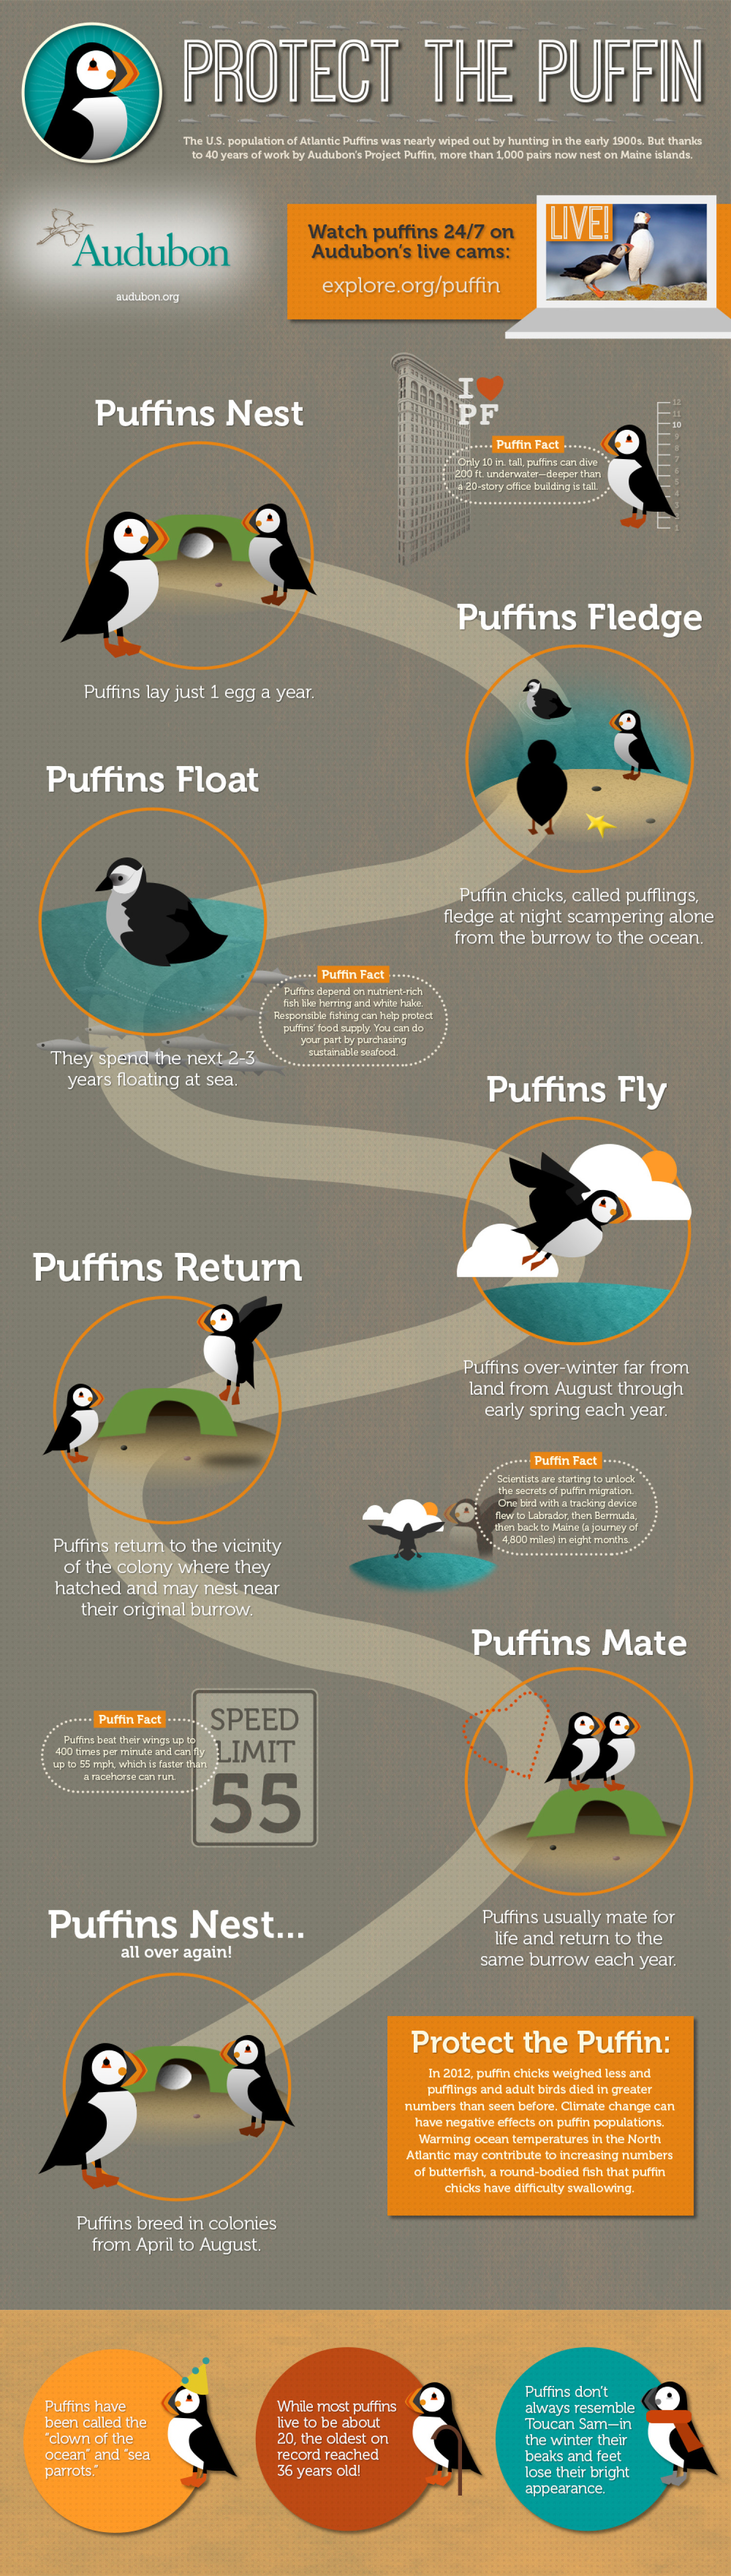 Protect the Puffin Infographic